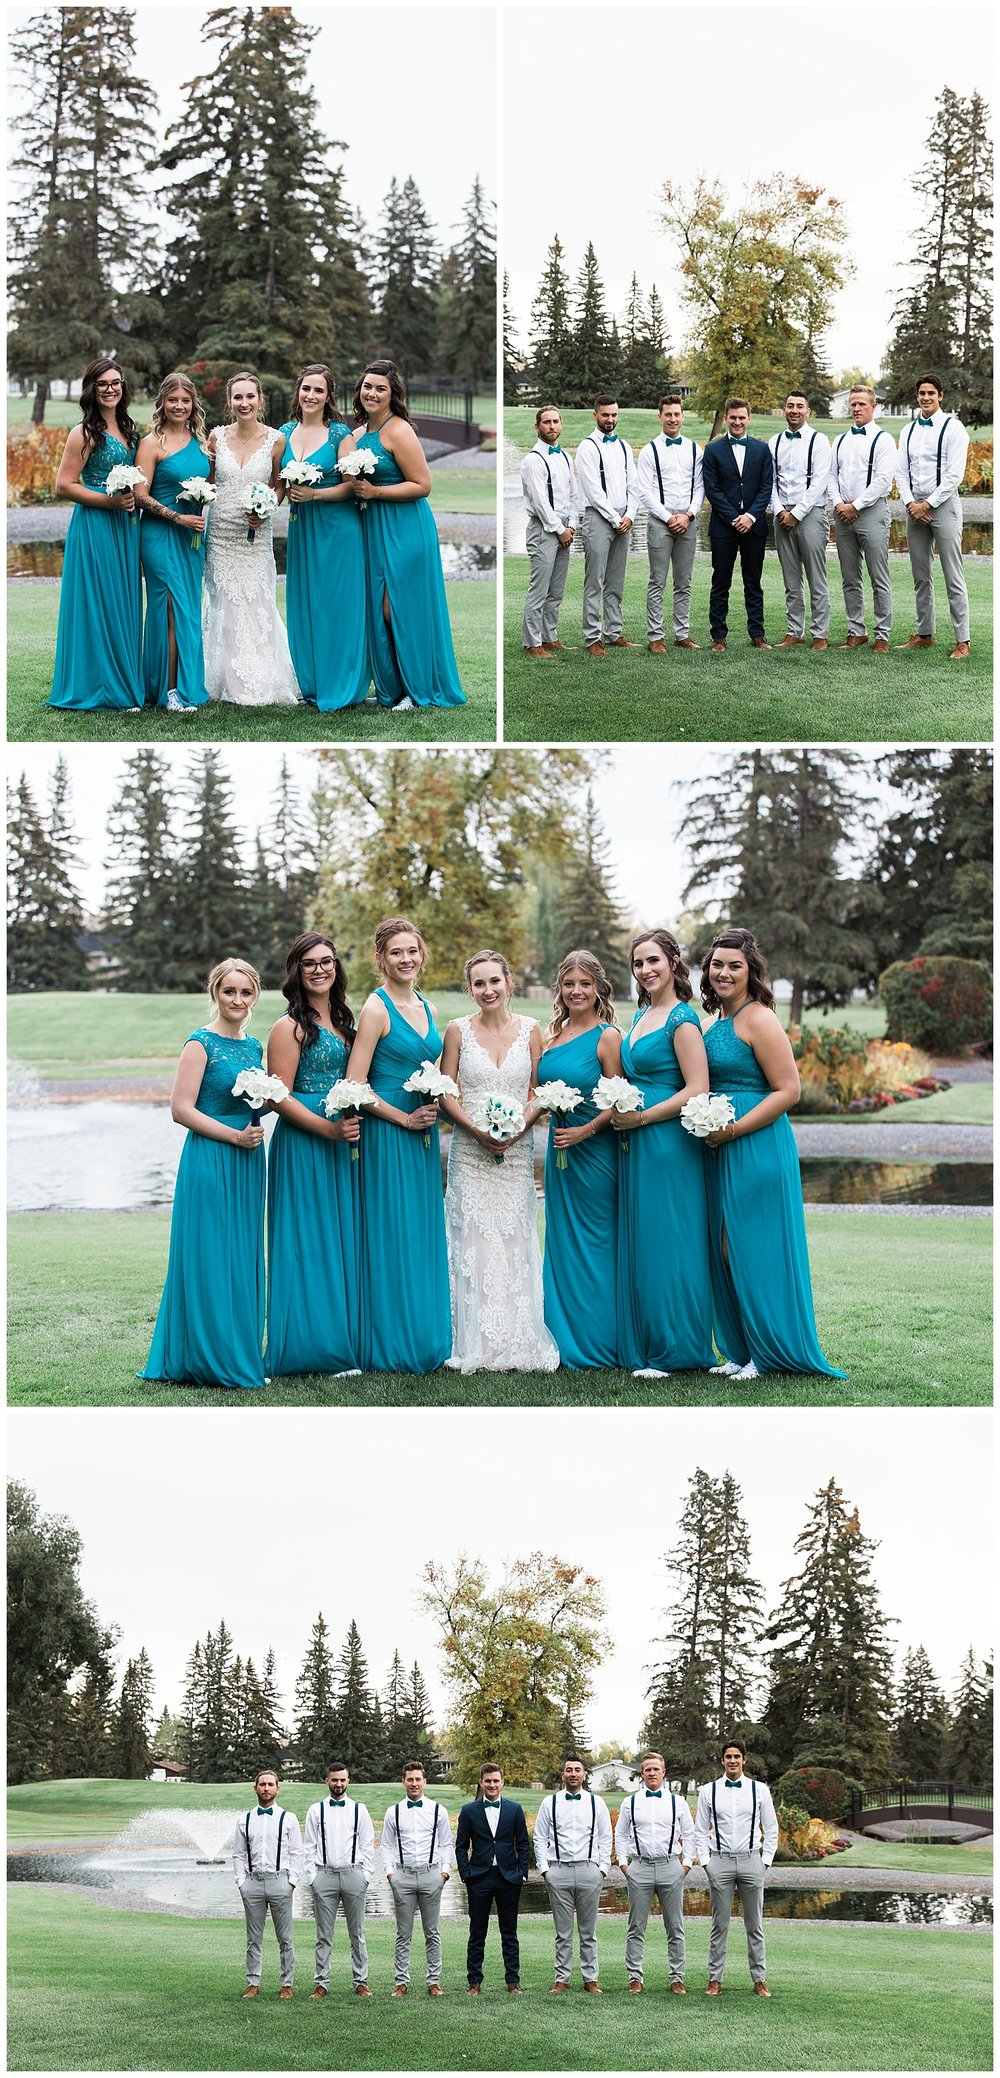 Calgary-fall-wedding-photographer-willow-park-golf-country-club-_0009.jpg